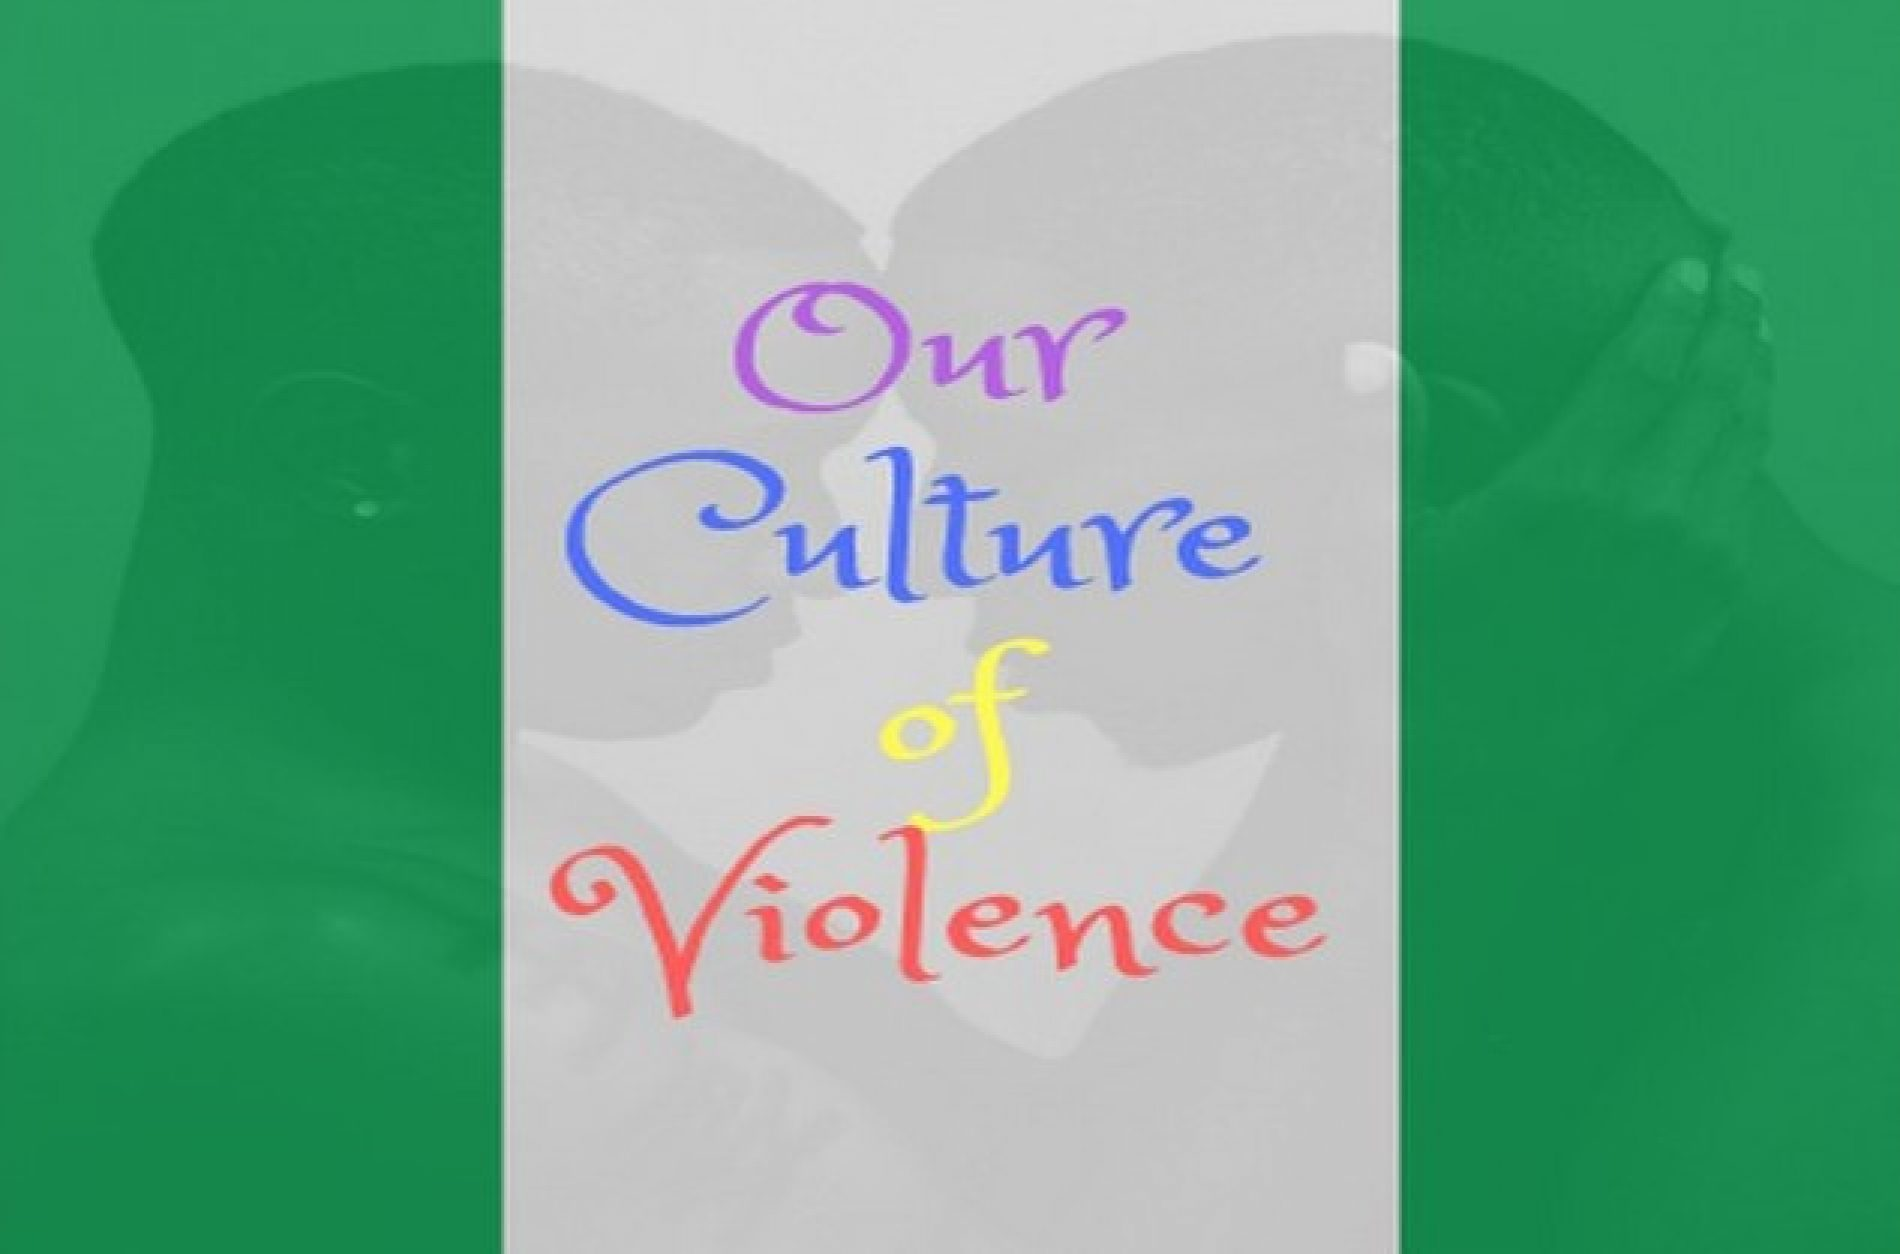 Homophobic Rhetoric And Nigeria's Culture Of Violence (A Piece By Ayo Sogunro)